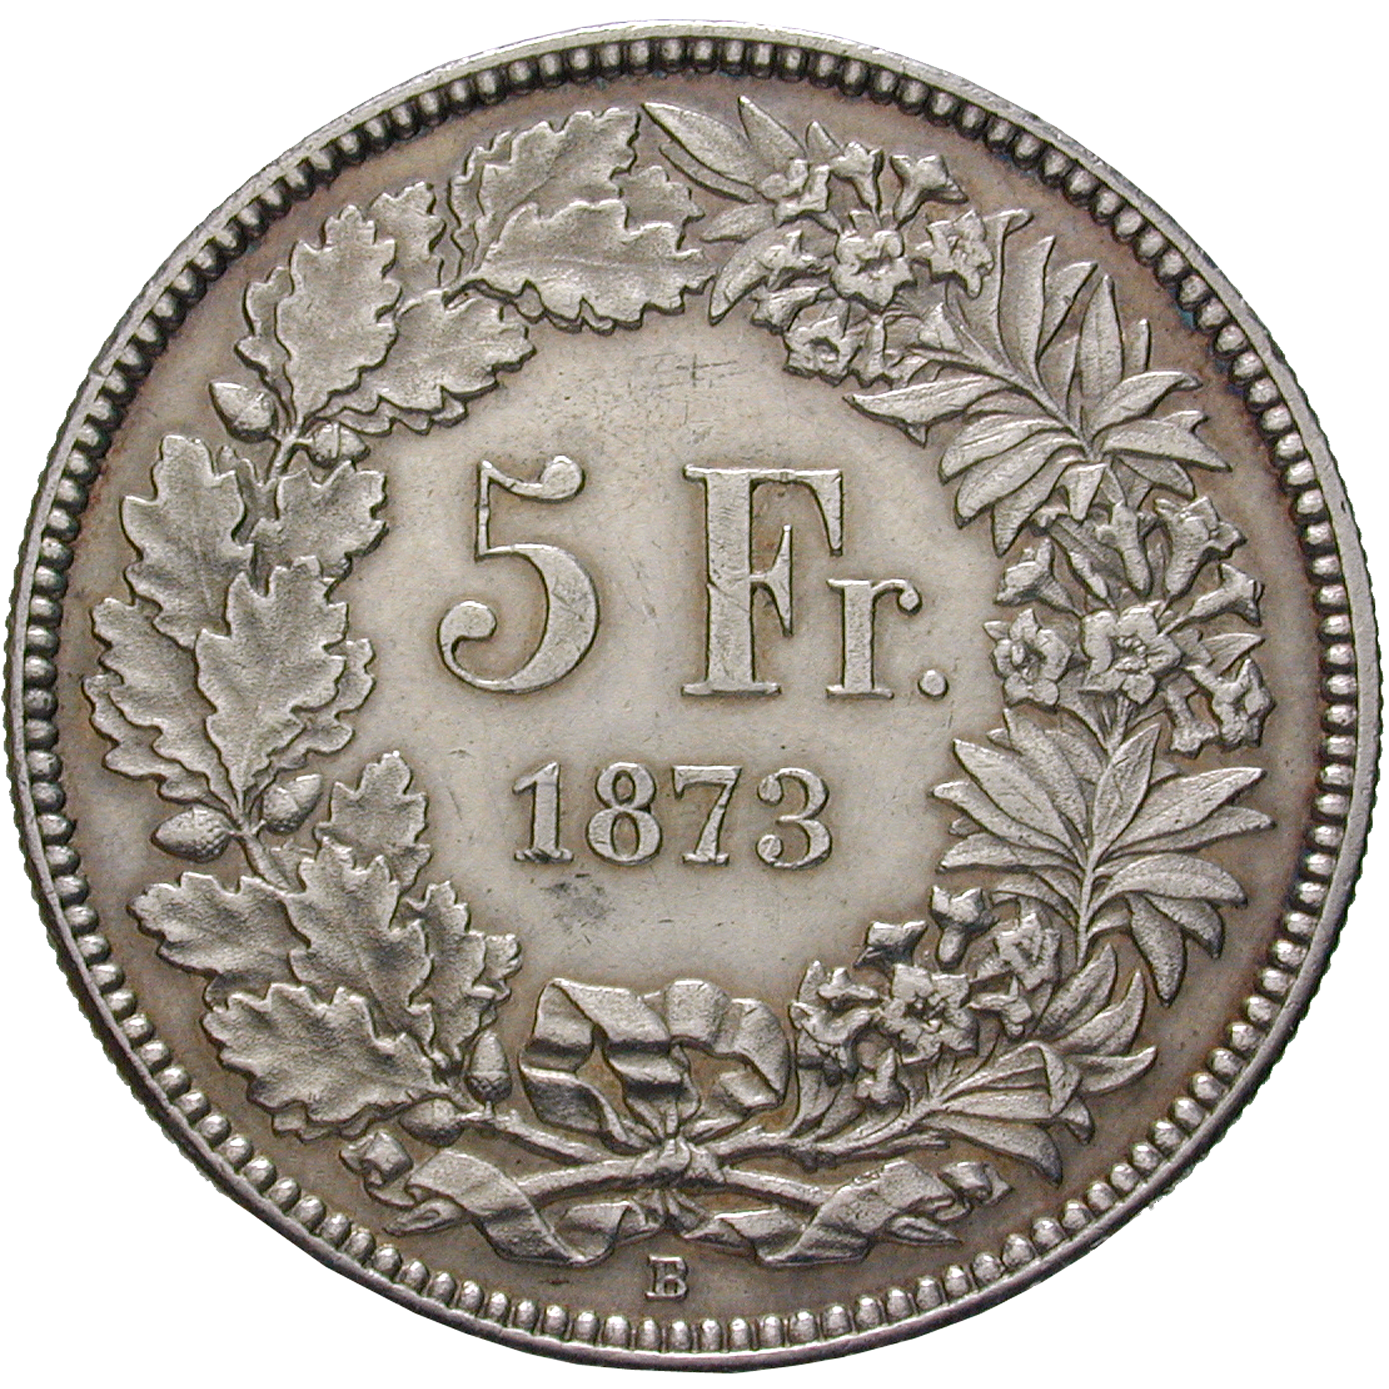 Swiss Confederation, 5 Francs 1873 (reverse)